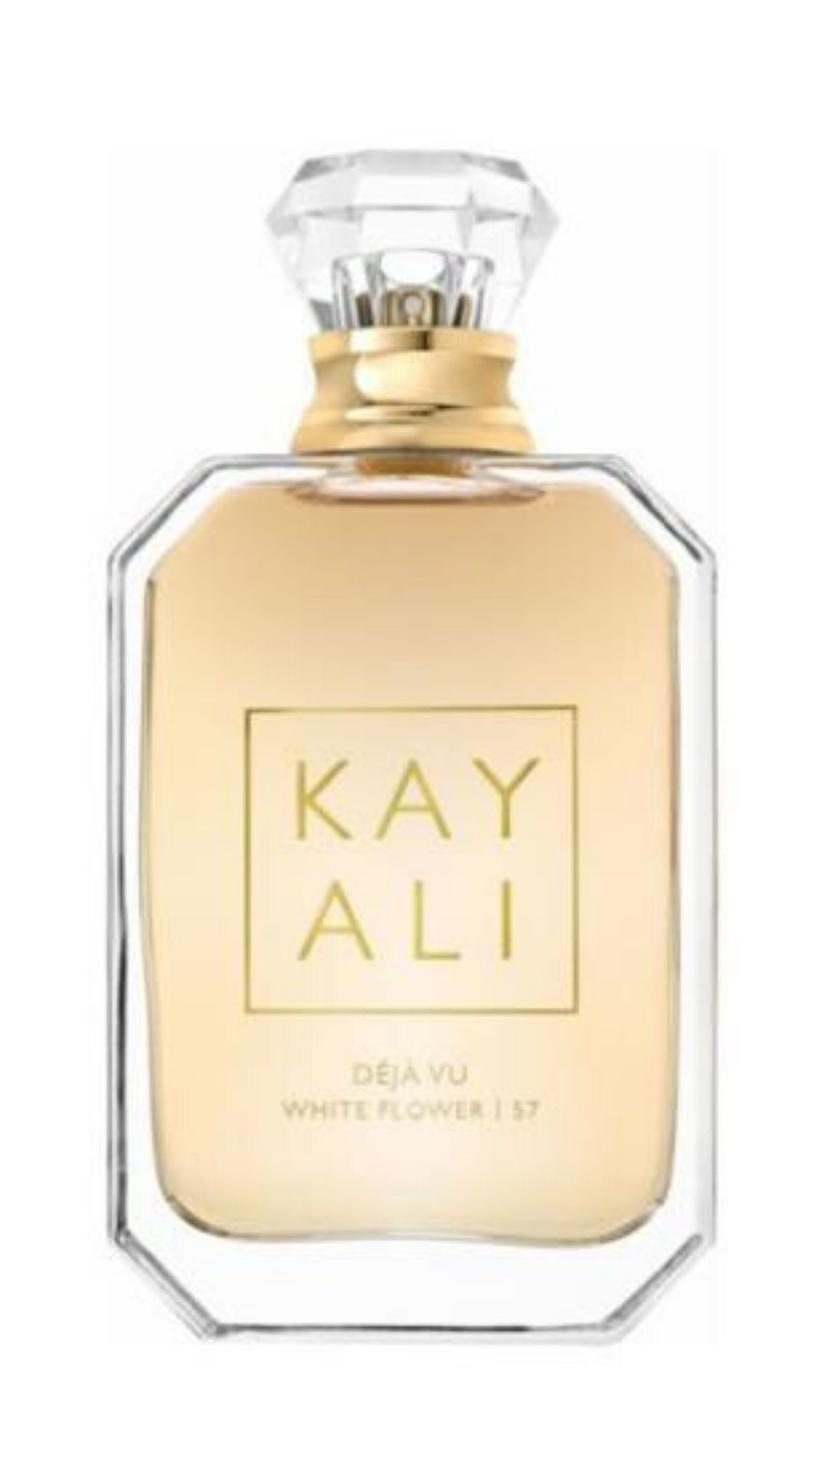 Perfumes, Best perfume of 2020, Best fragrances, Best new vanilla fragrance in 2020, Miss Dior, Gucci Guilty Love Edition, Hermes